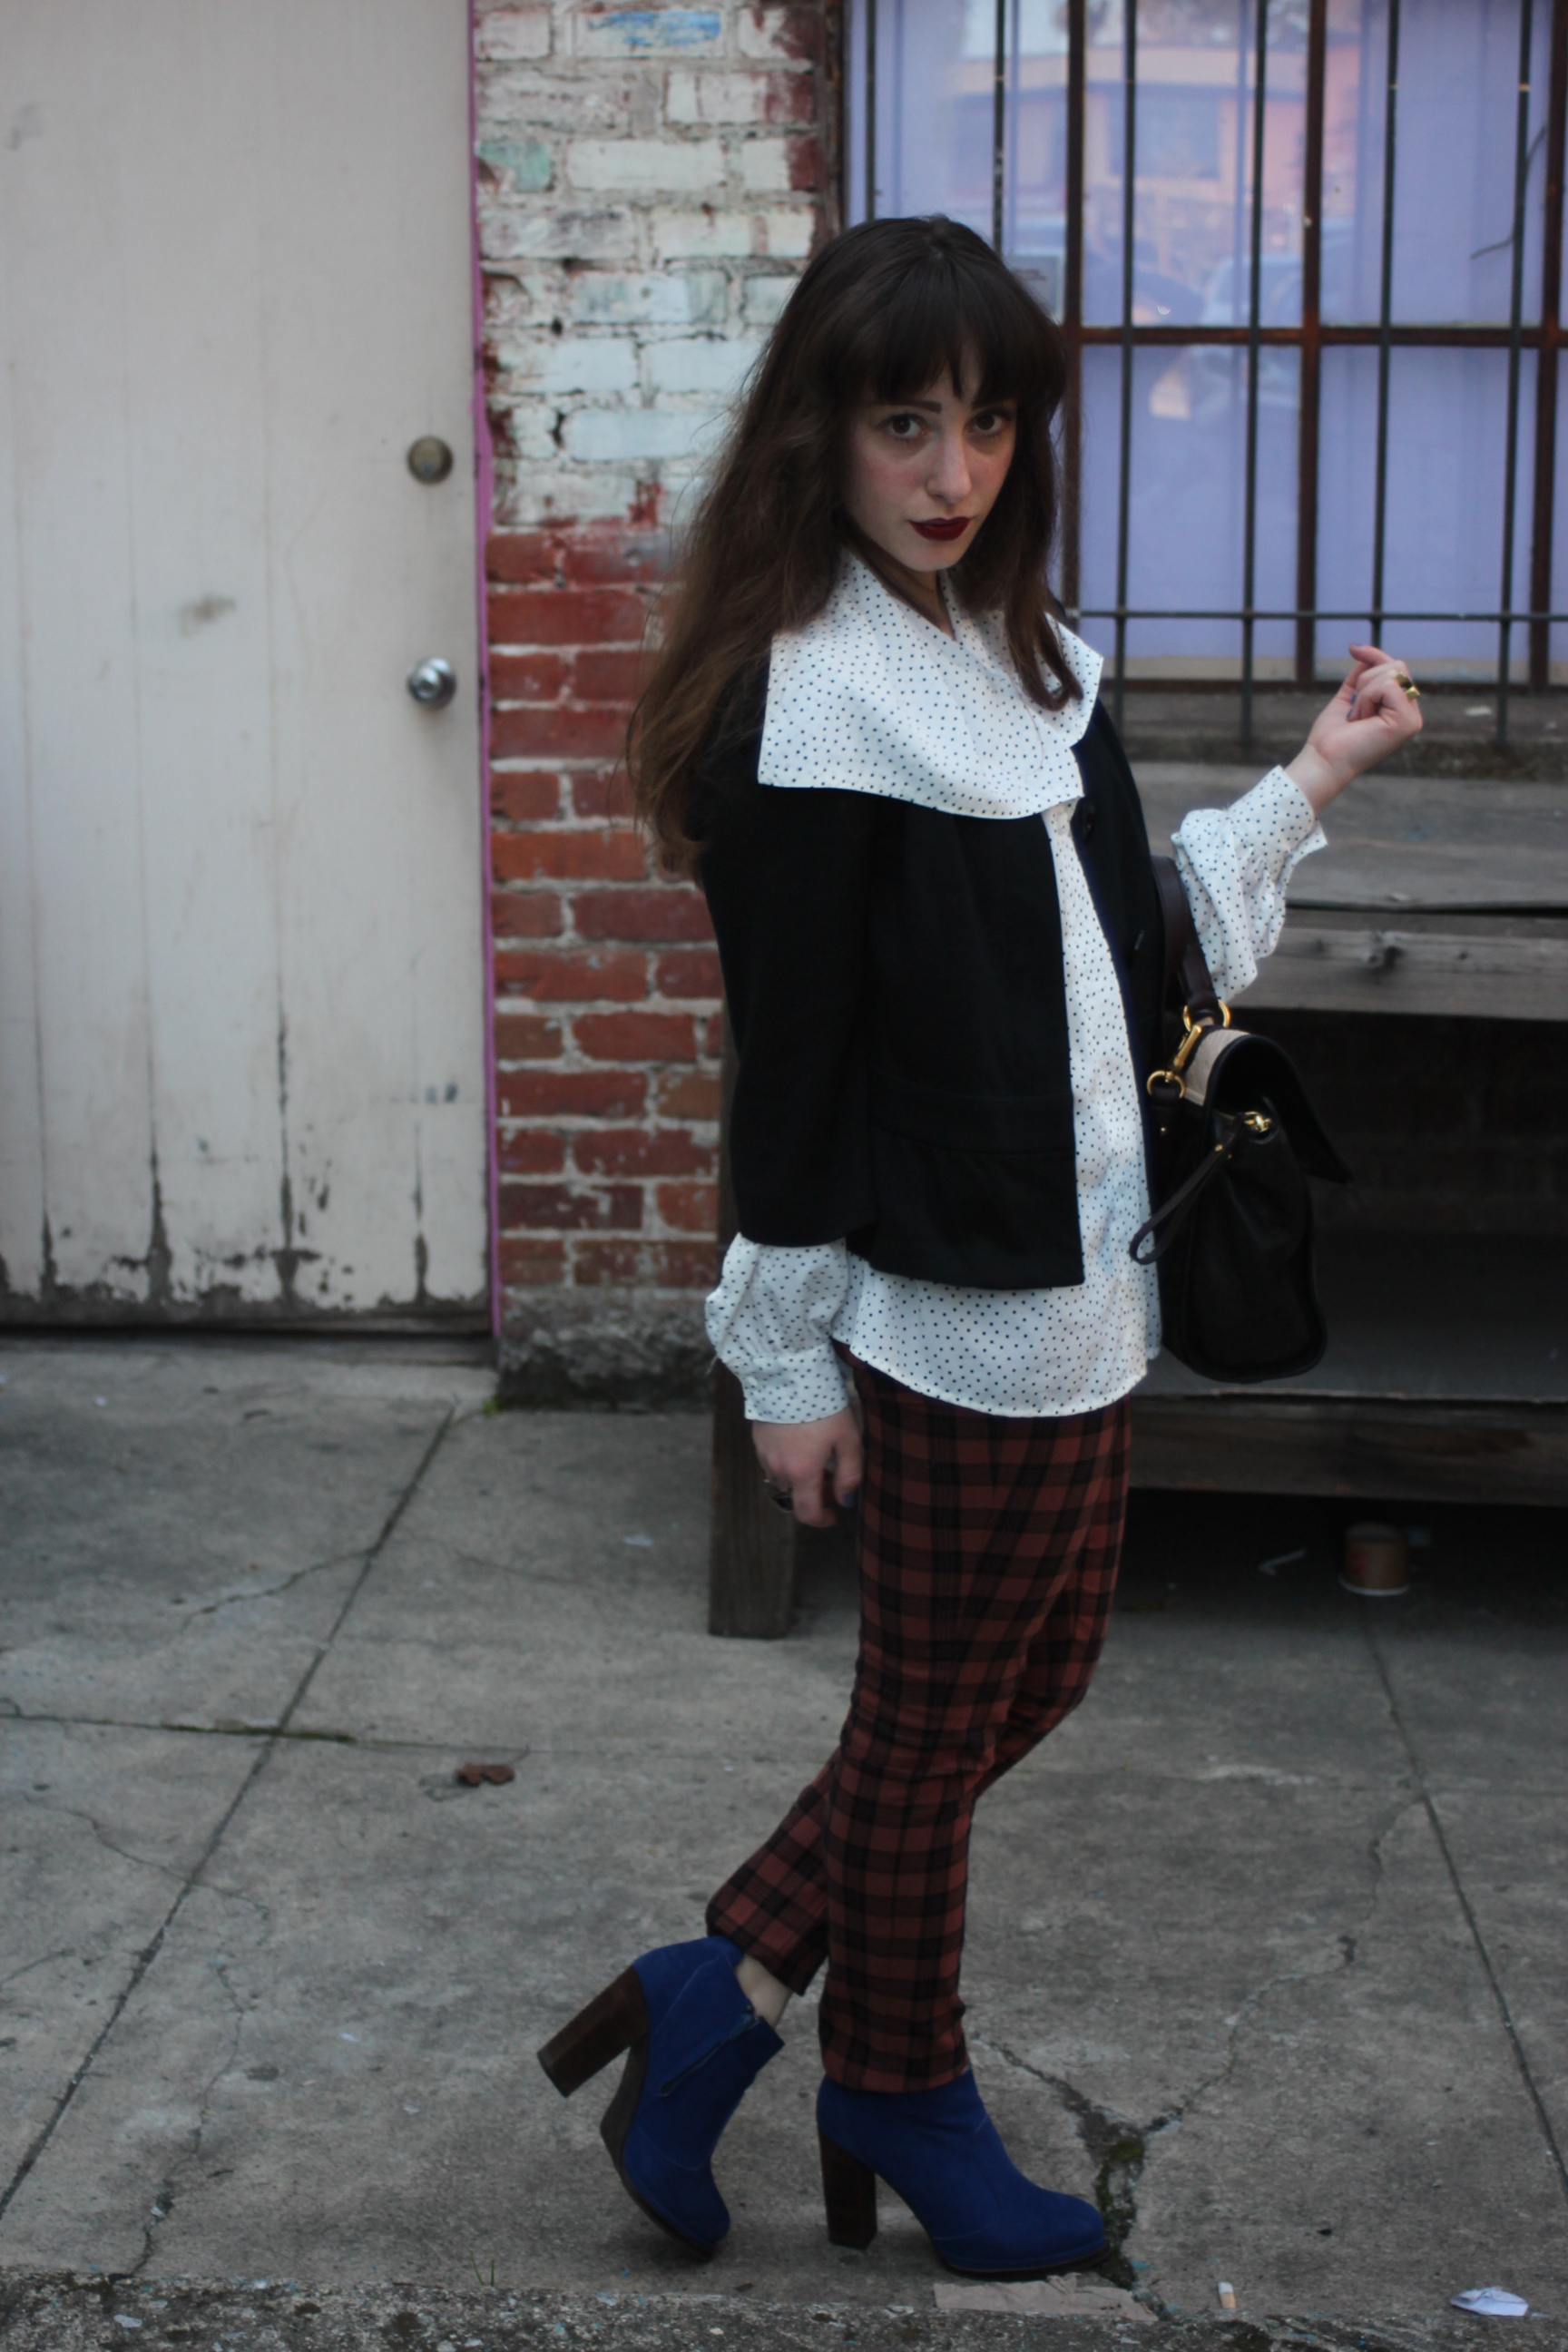 Sweater: Uniqulo, Blouse: Vintage, Plaid Pants: Ben Sherman, Boots: Jeffrey Campbell, Flipping Out Bag: Marc by Marc Jacobs